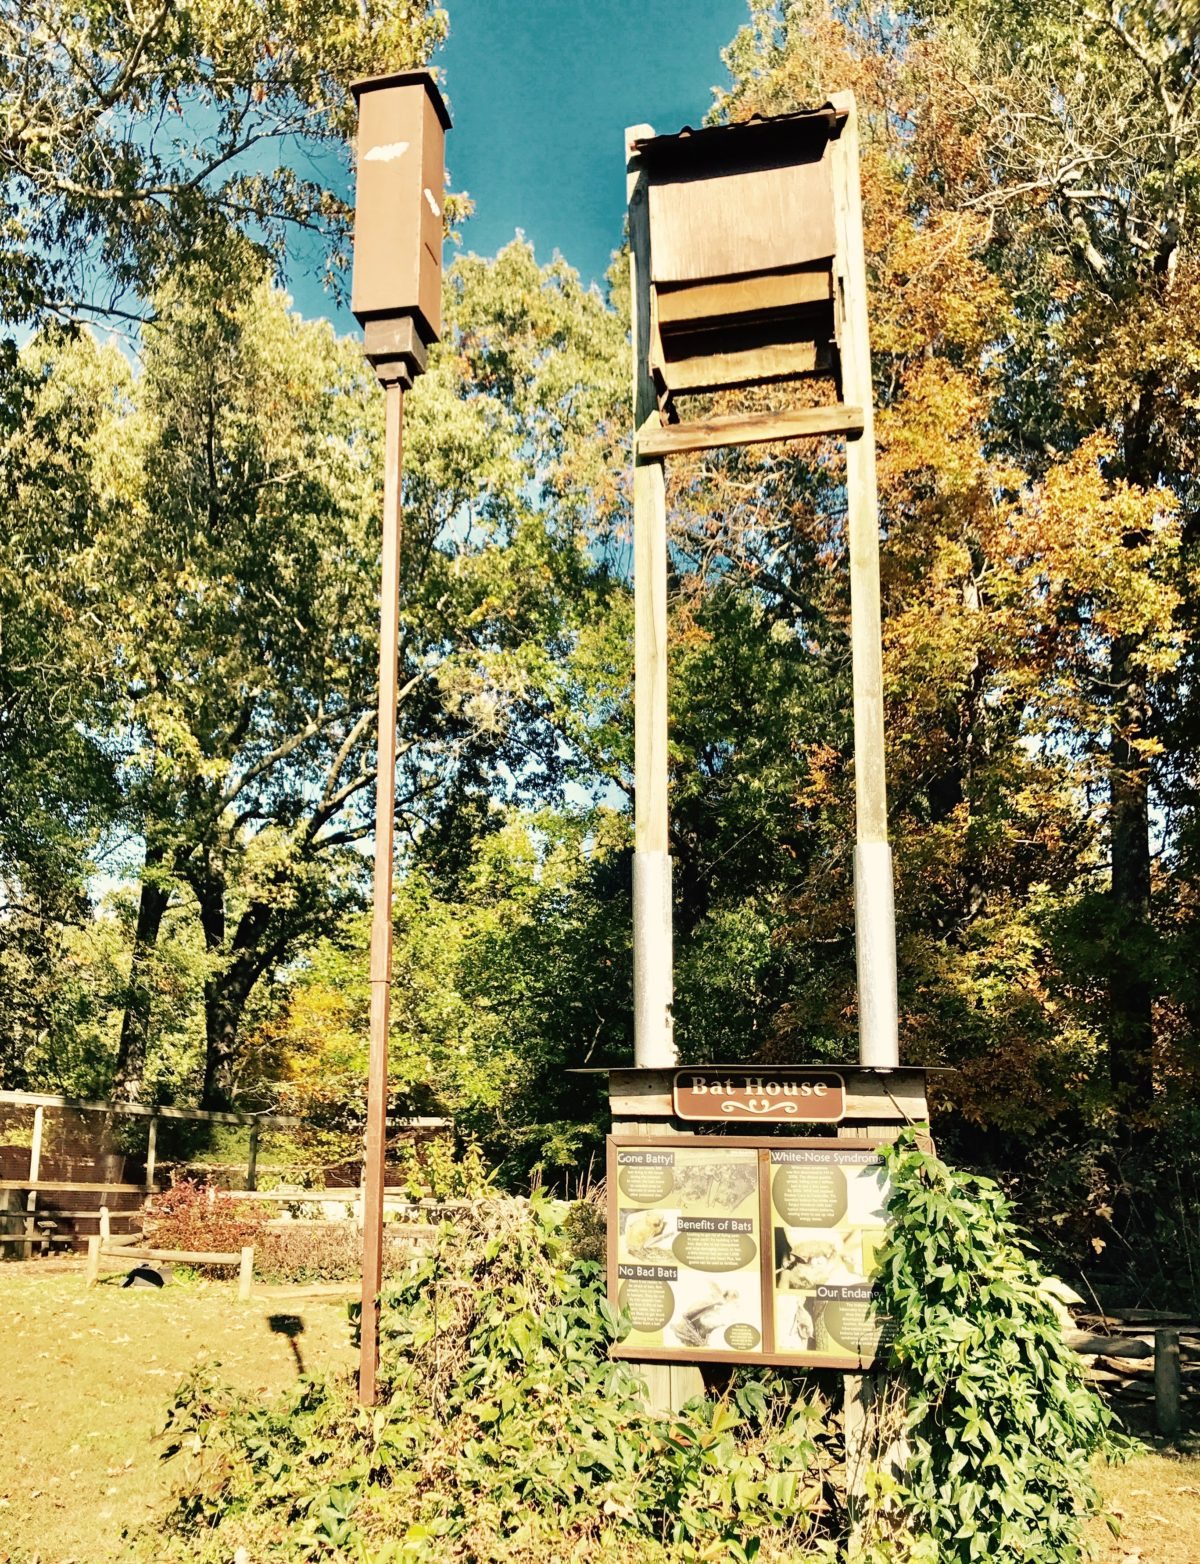 Bat houses at Land Between the Lakes Woodland Nature Station. (Nicole Erwin | Ohio Valley ReSource)